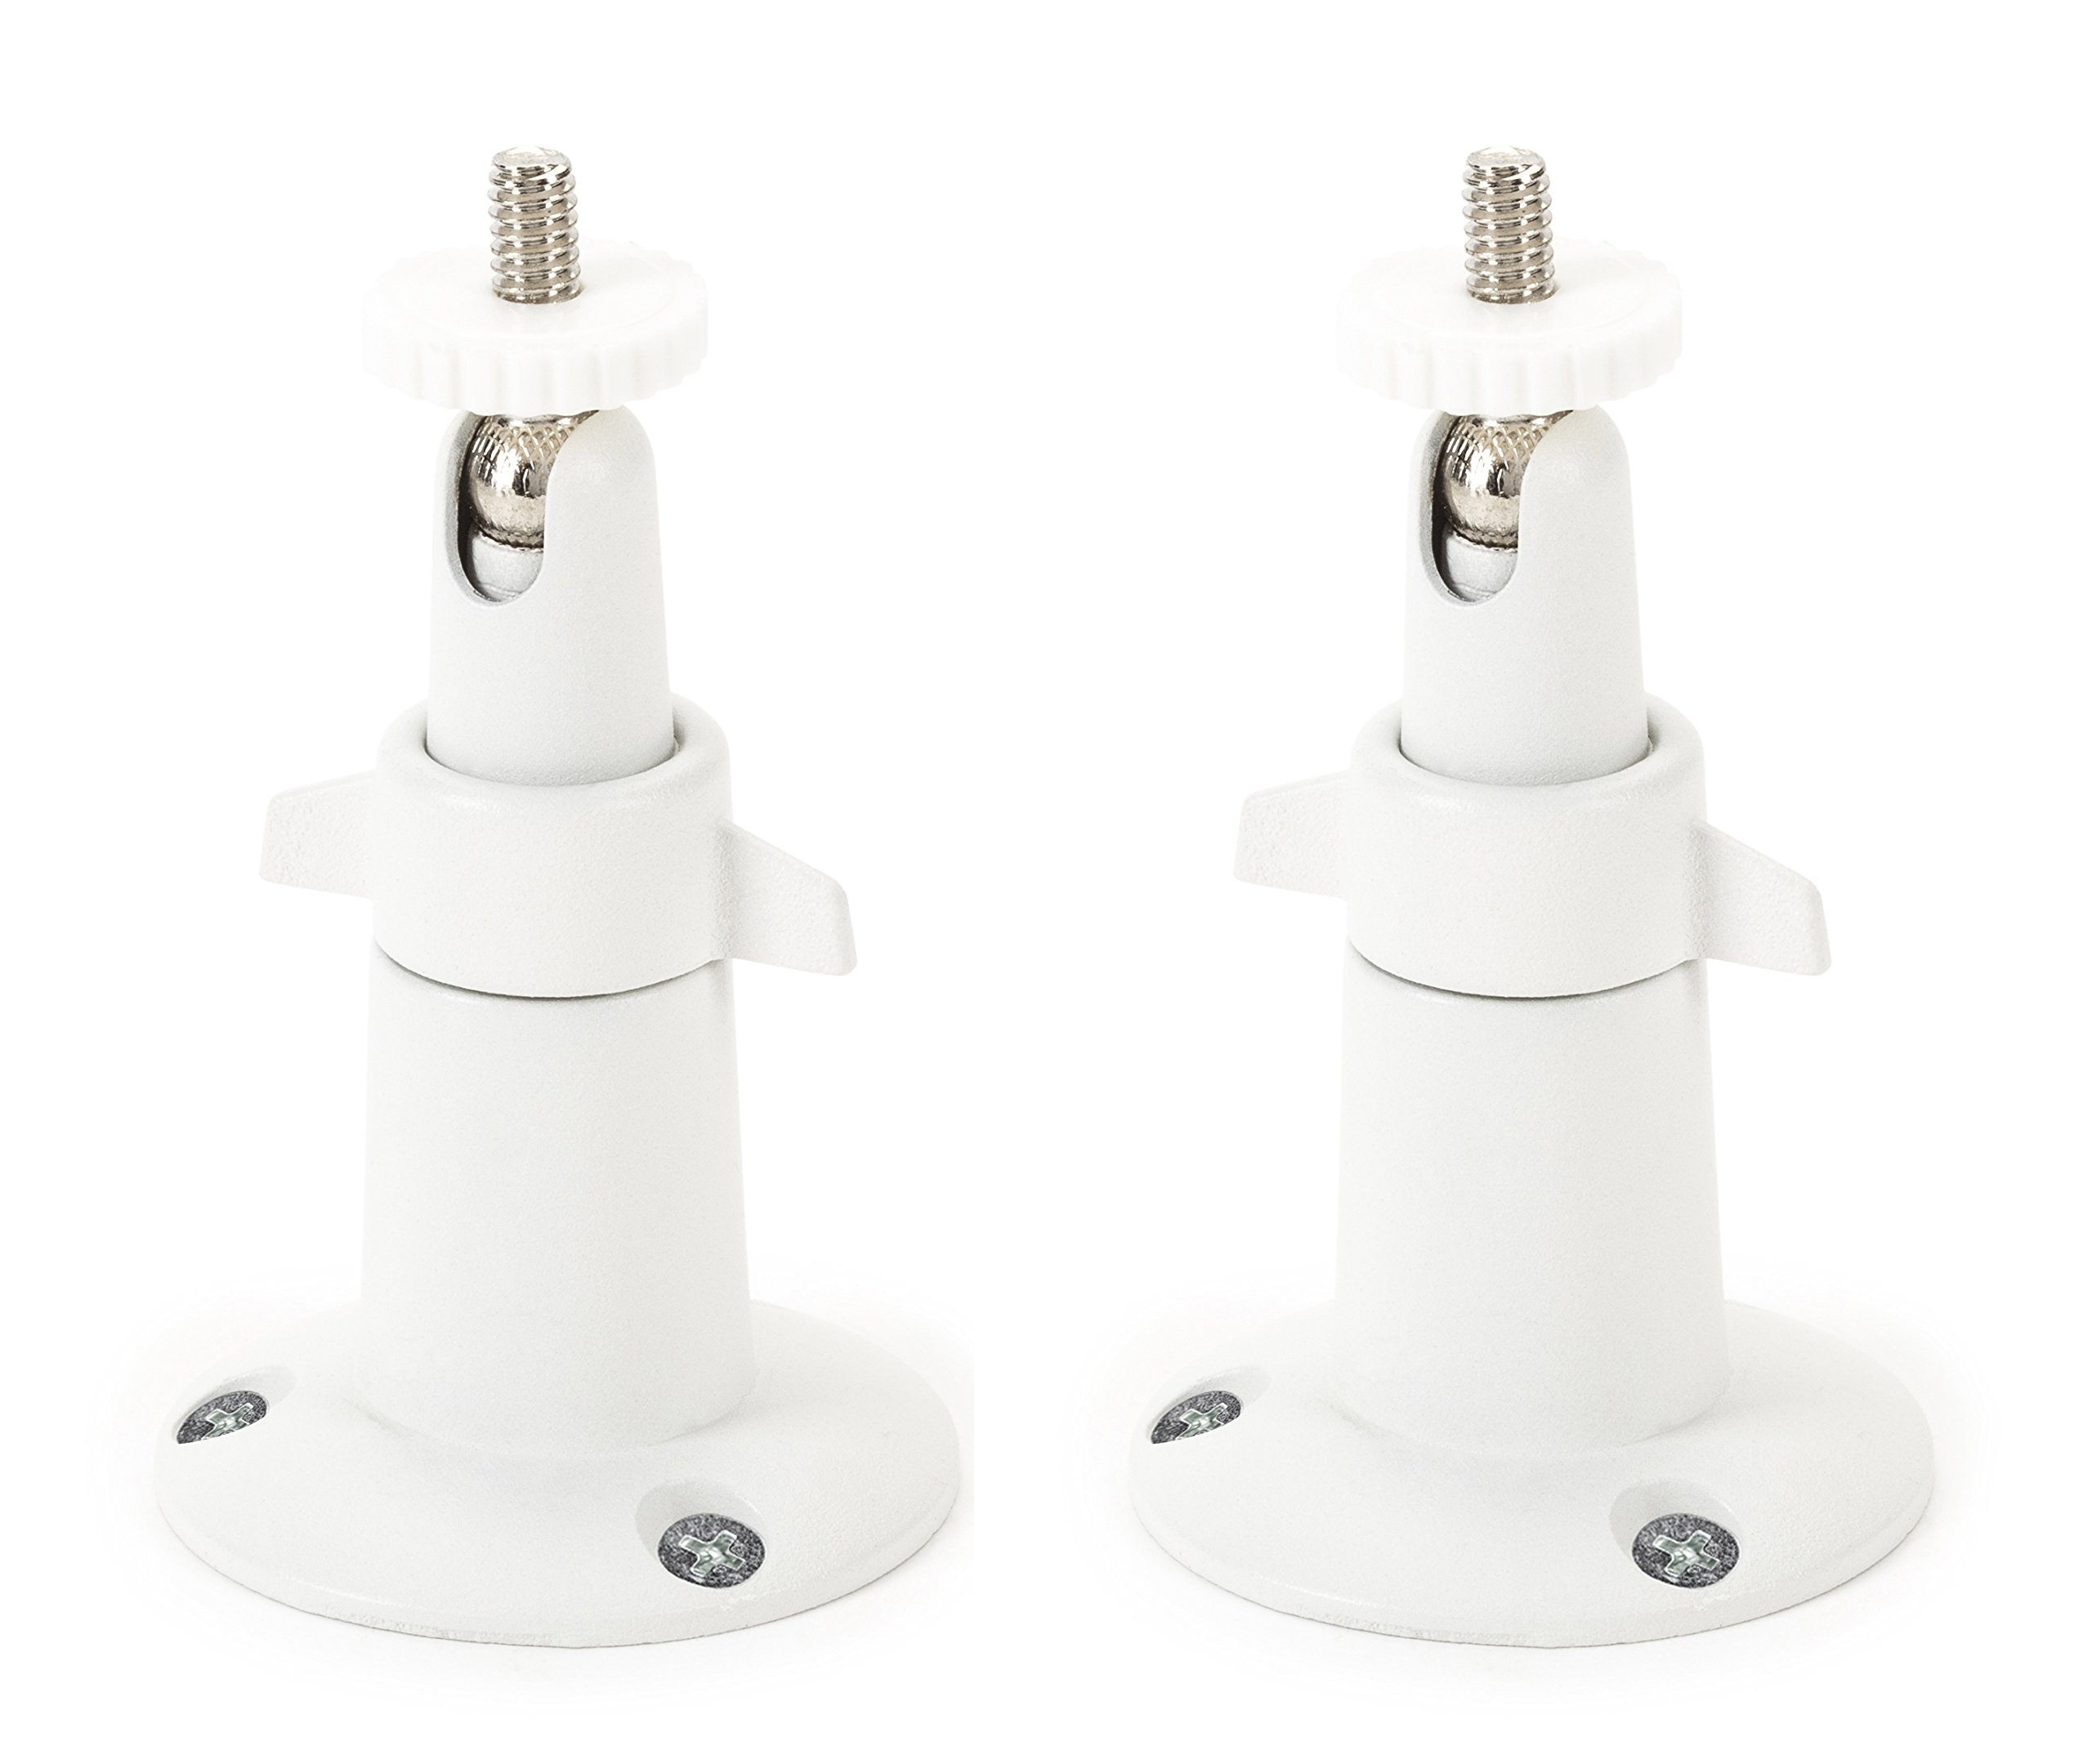 Wasserstein Adjustable Metal Wall Mount Compatible with Arlo Ultra, Pro, Pro 2 & Other Compatible Models (2-Pack, White) by Wasserstein